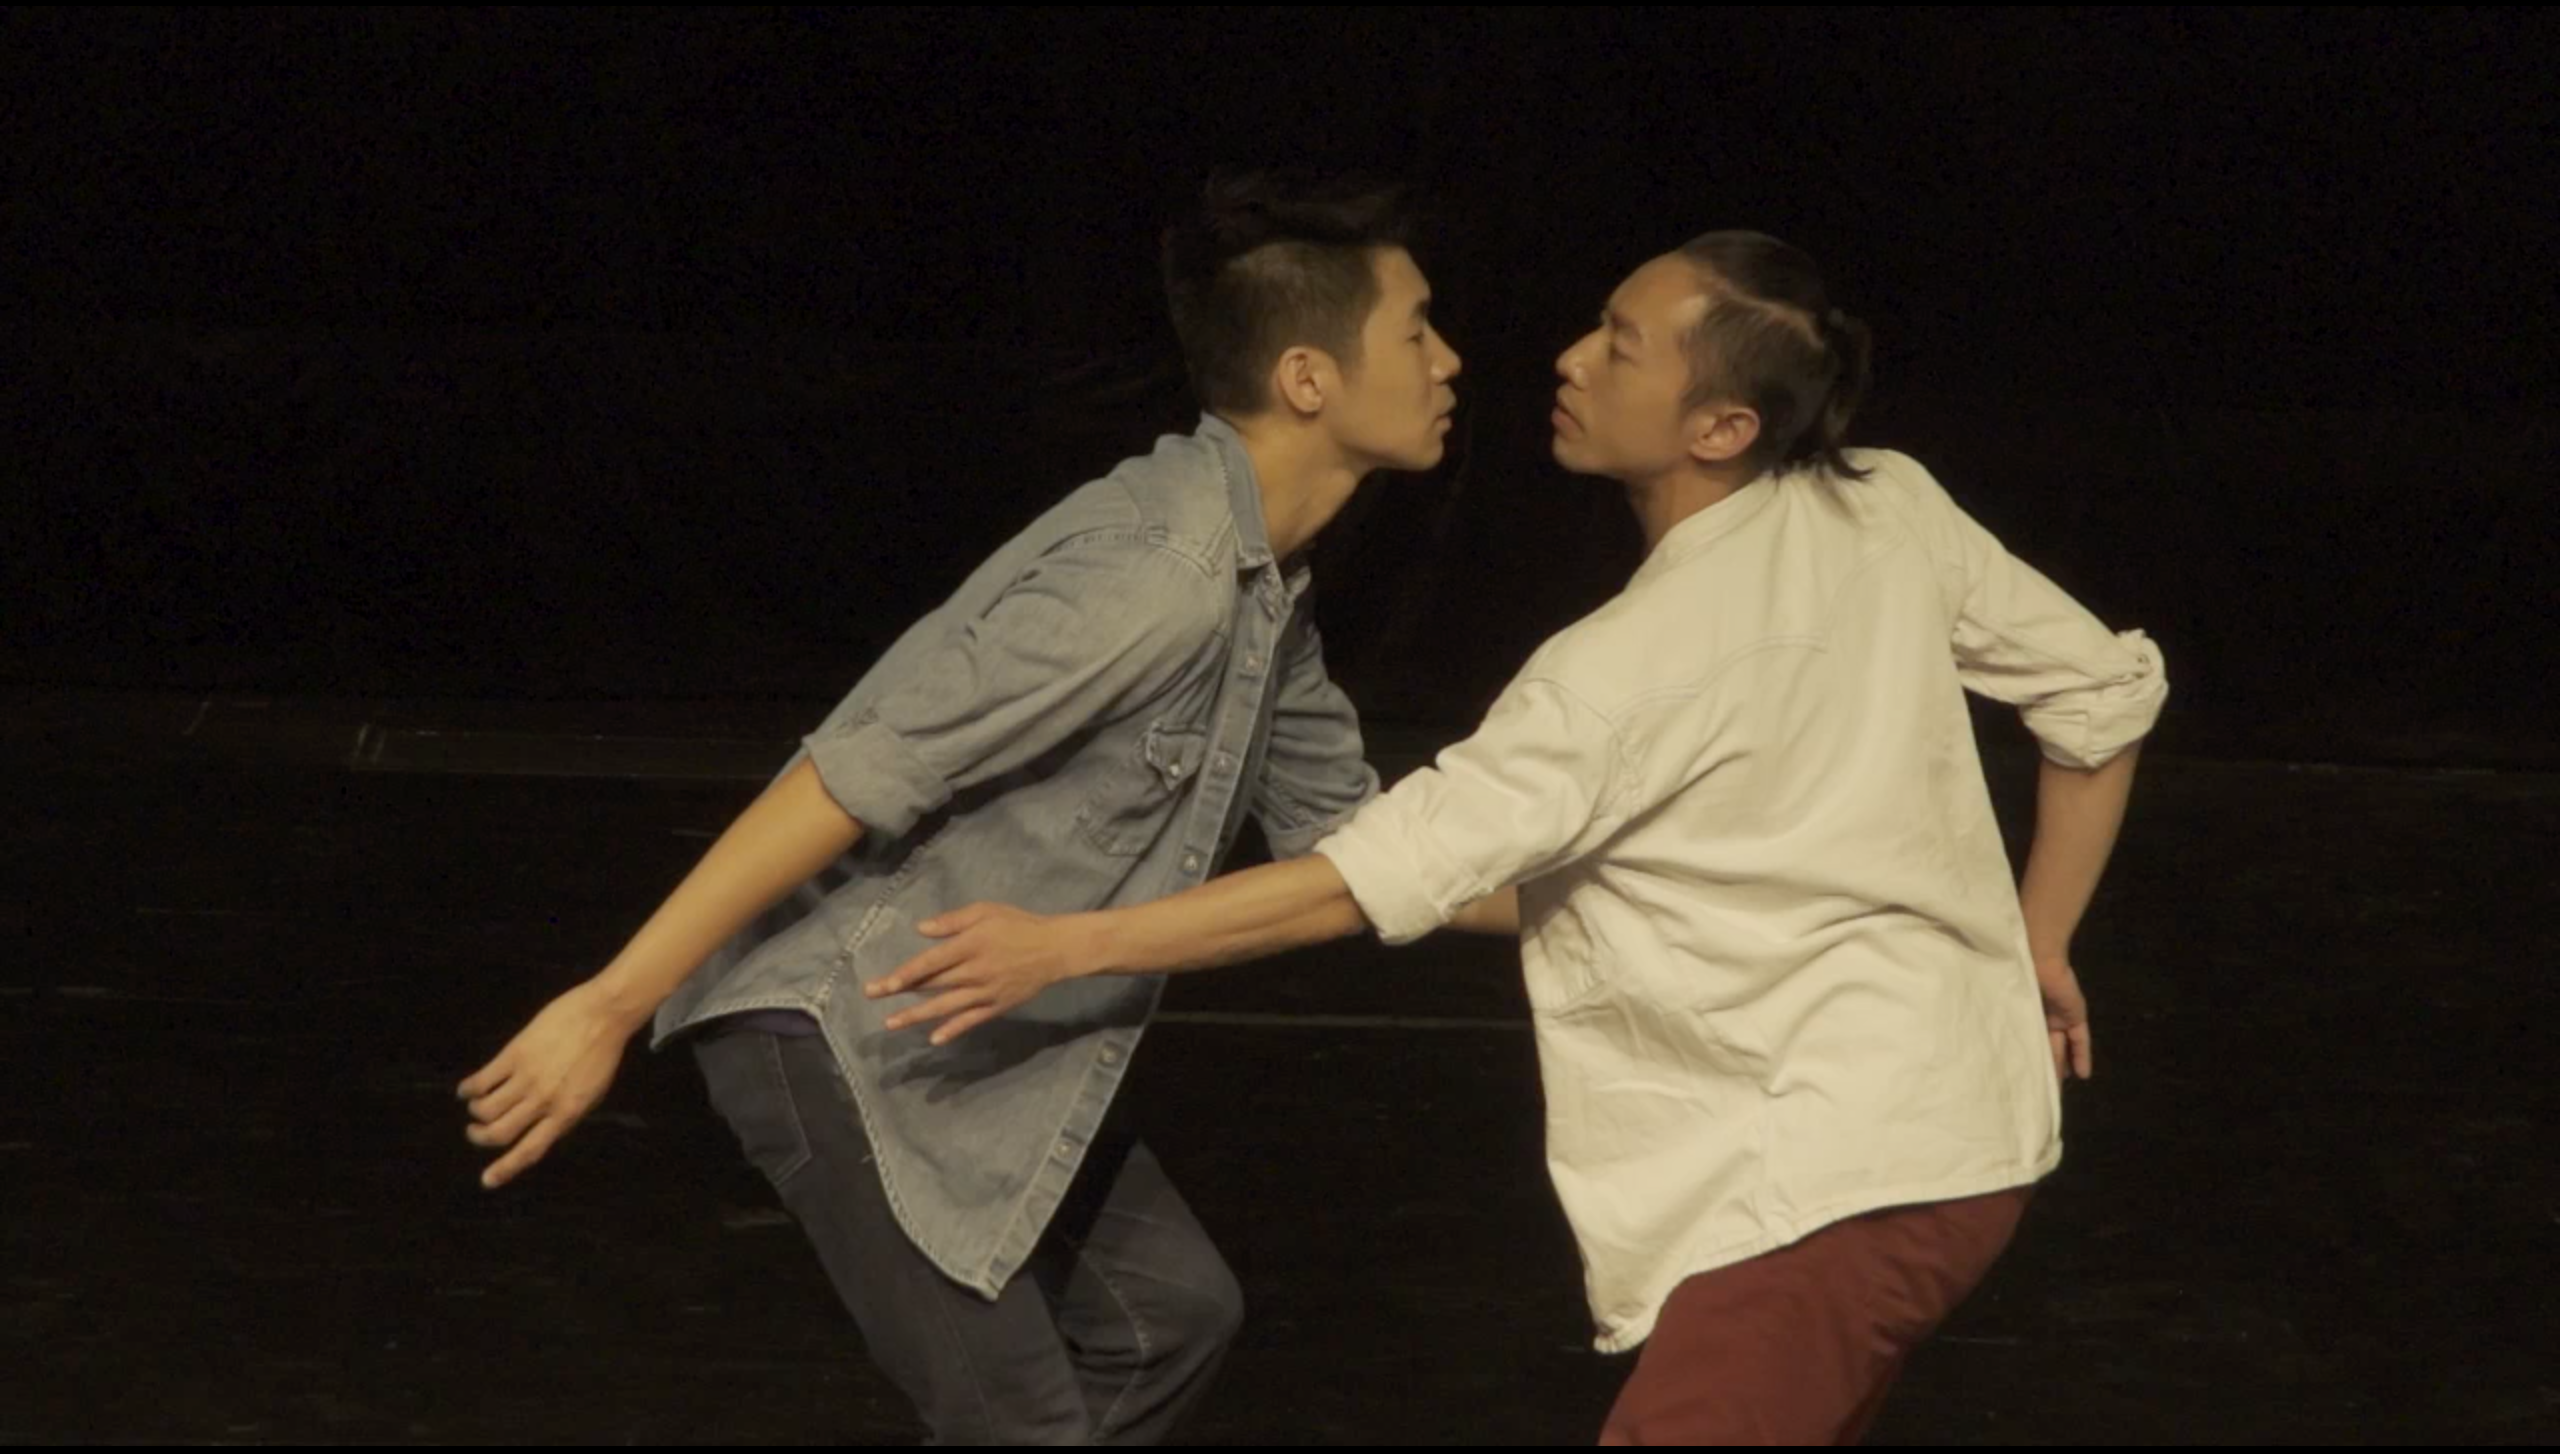 A number of sonic elements used in <i>Vortex</i> were first recorded by Wayson (left) and then modified and arranged by Peter Lenaerts. The delicateness of the soundtrack ably complements the slow, whirling movement choreographed by Wayson<br></br>© Photo provided by Beijing Dance Festival